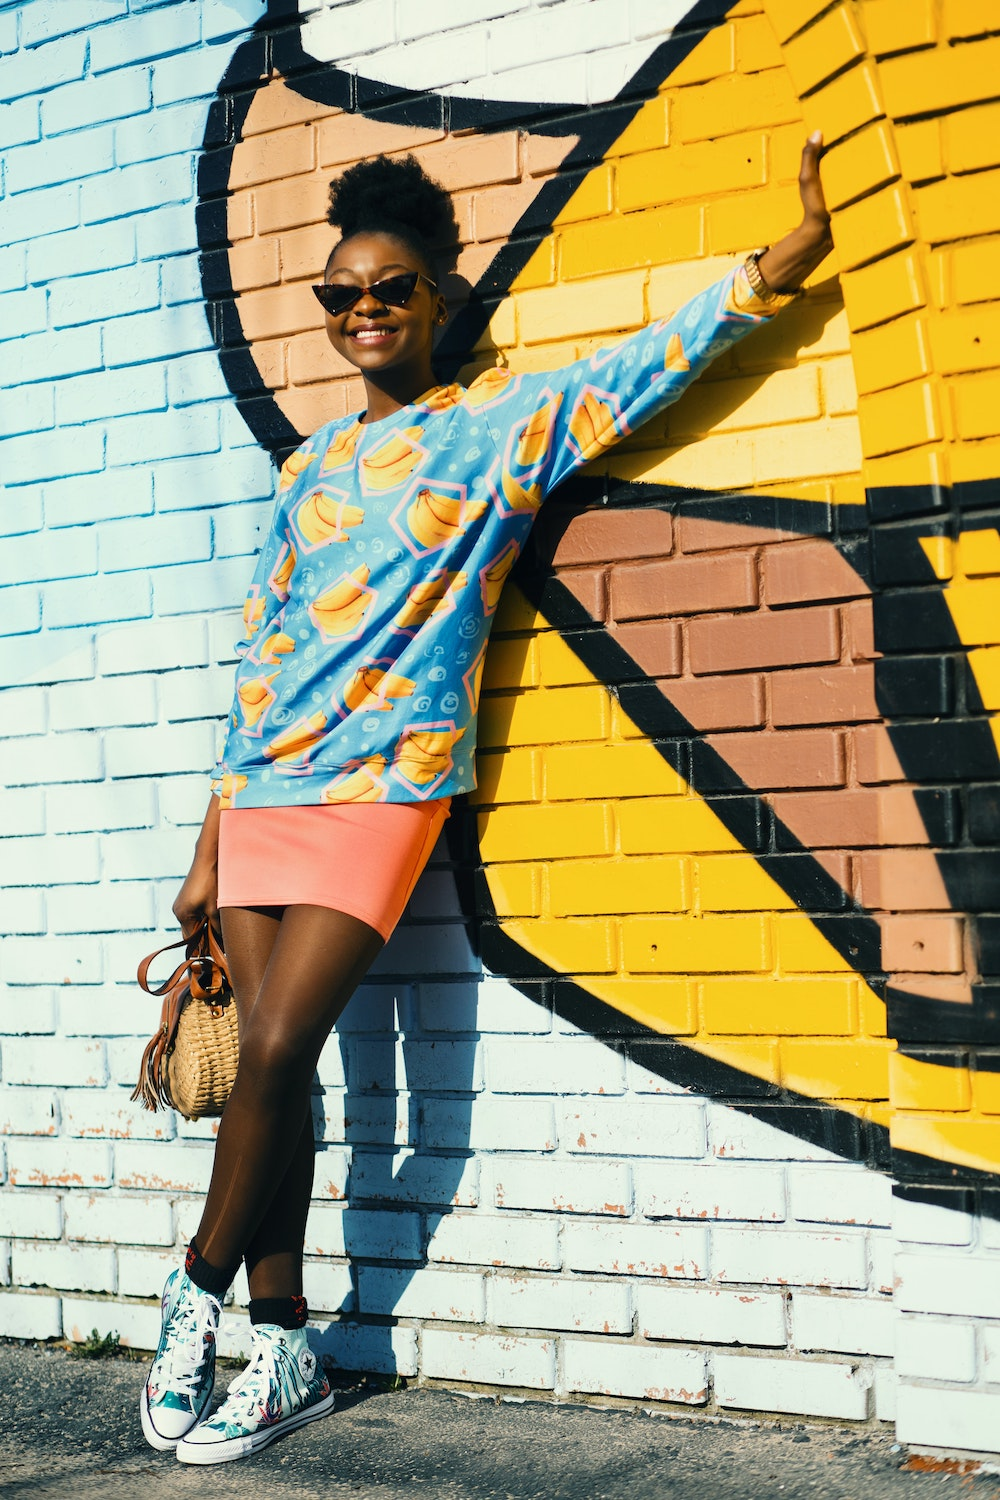 Retail data analytics firmEdited advised brands to learn how to target a new Gen Z subgroup that celebrates flaws rather than hides them.